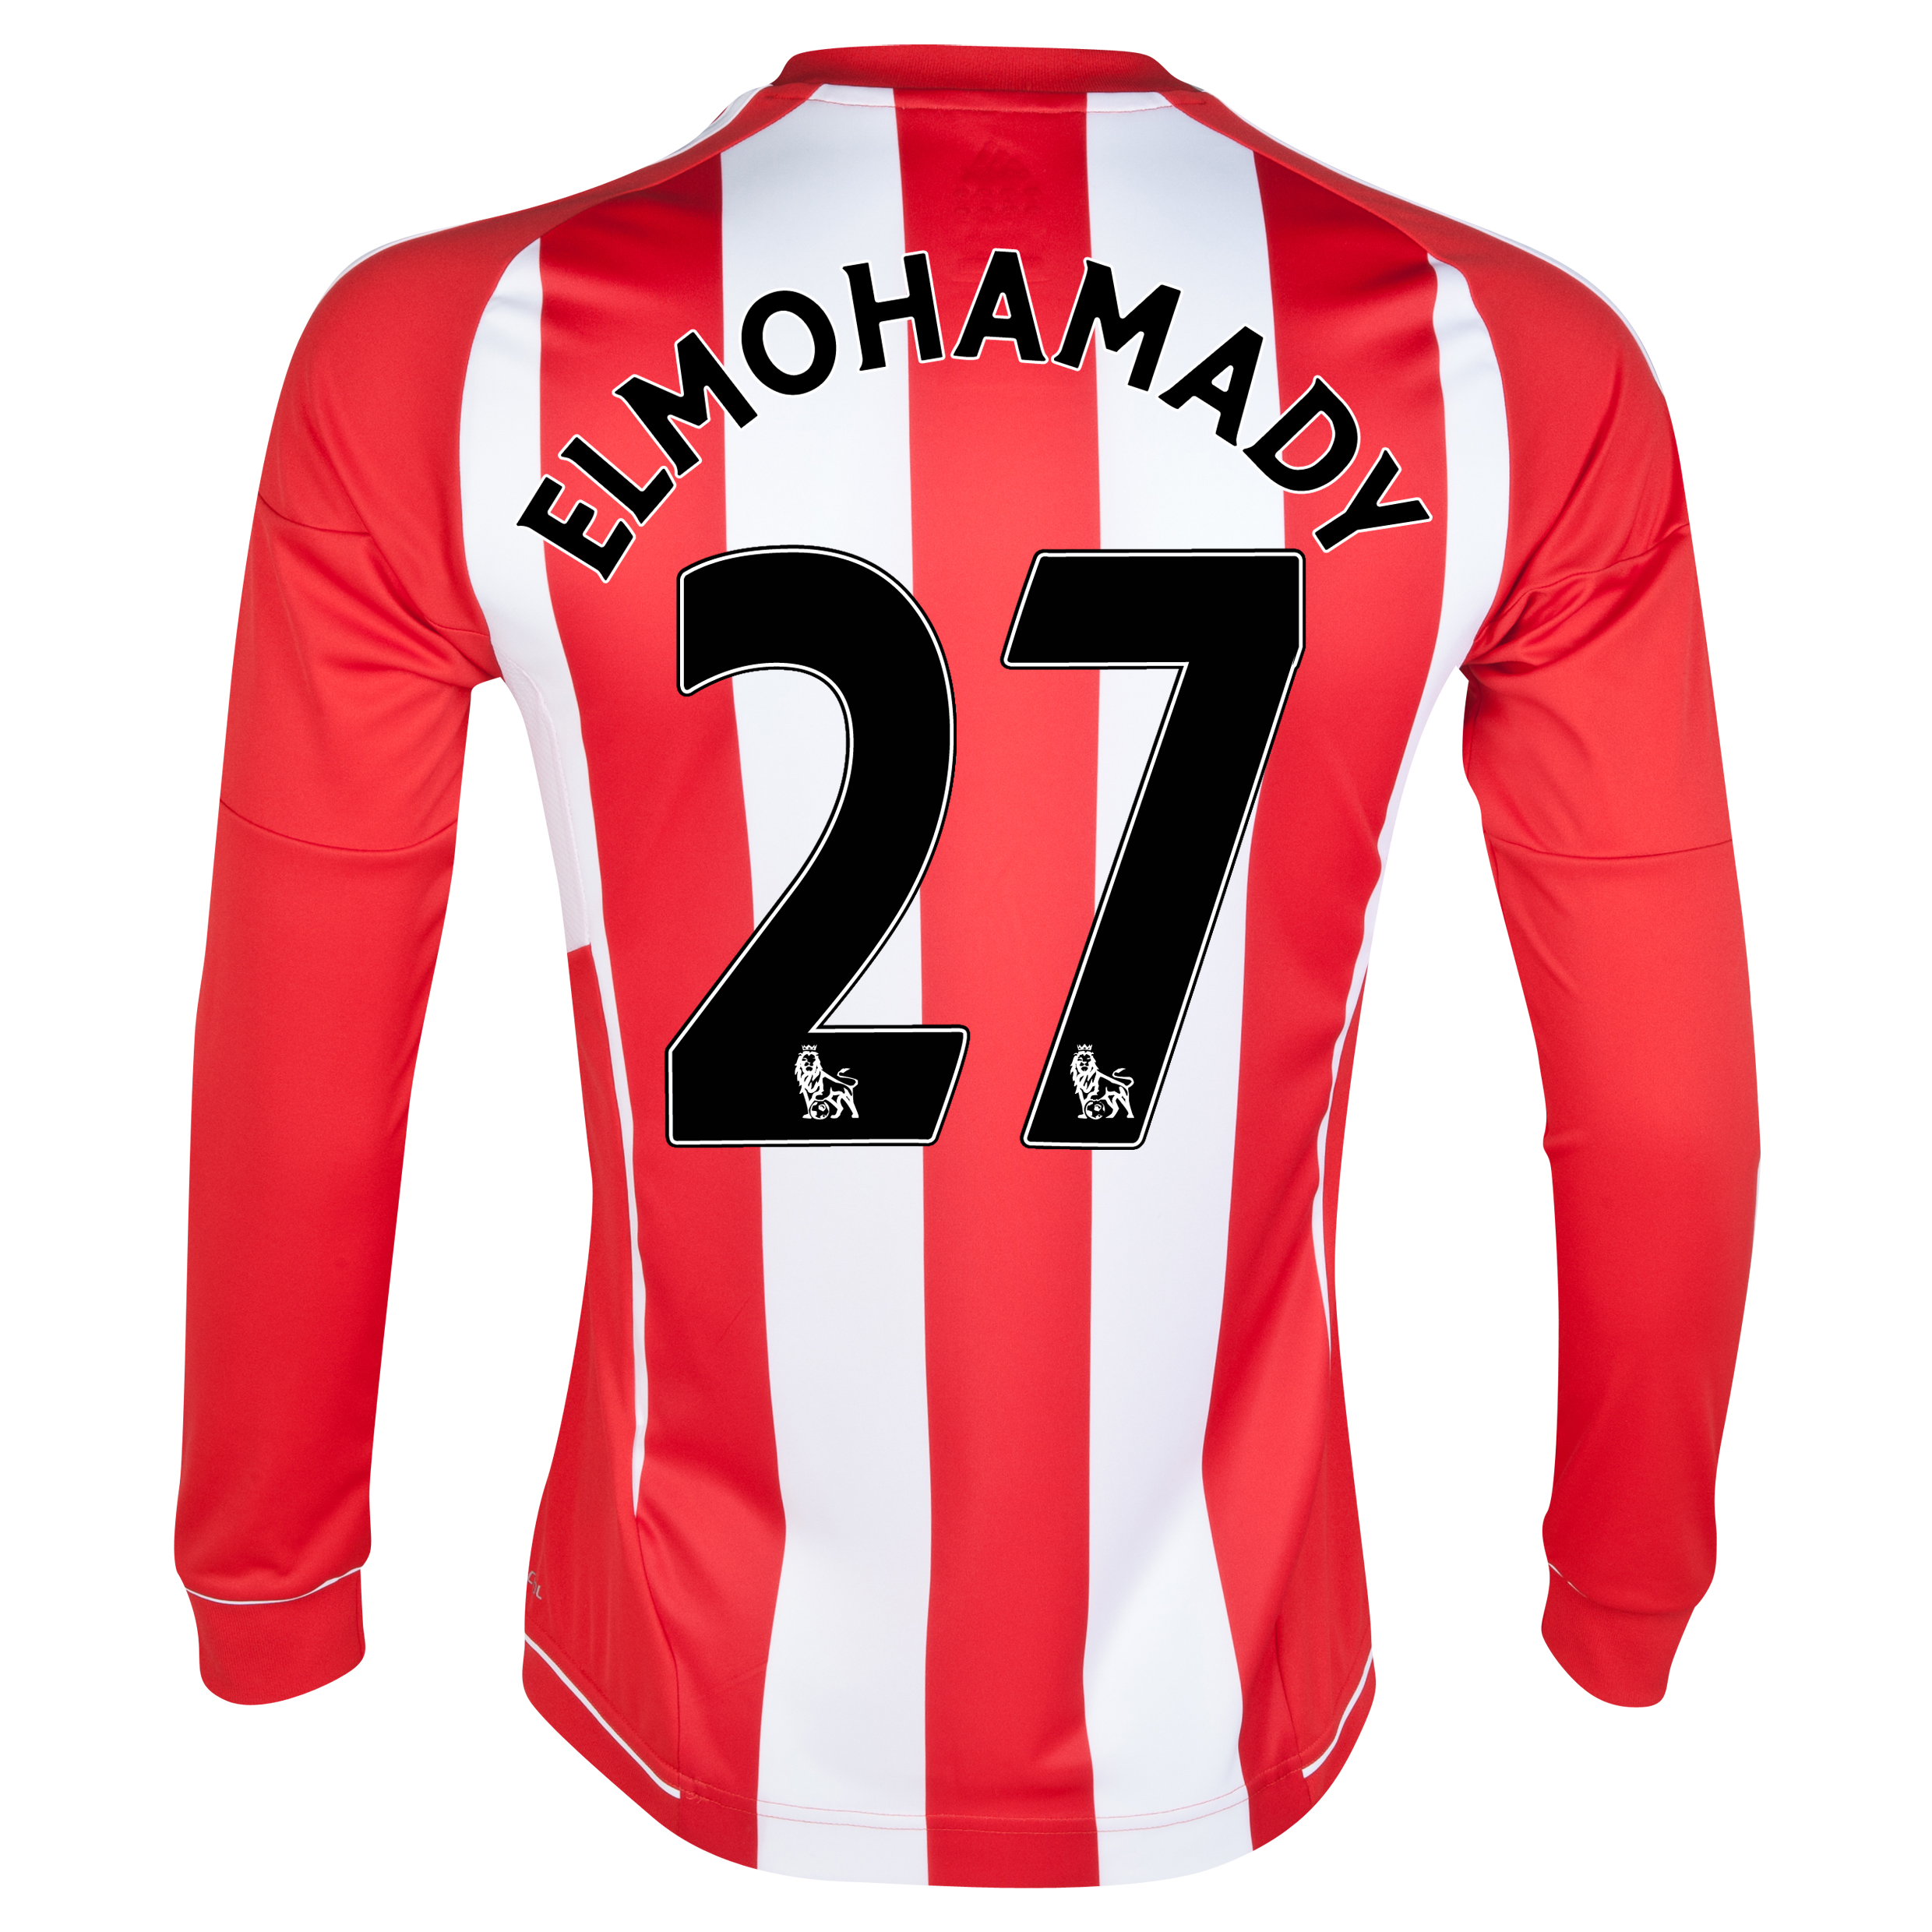 Sunderland Home Shirt 2012/13 - Long Sleeved - Junior with Elmohamady 27 printing